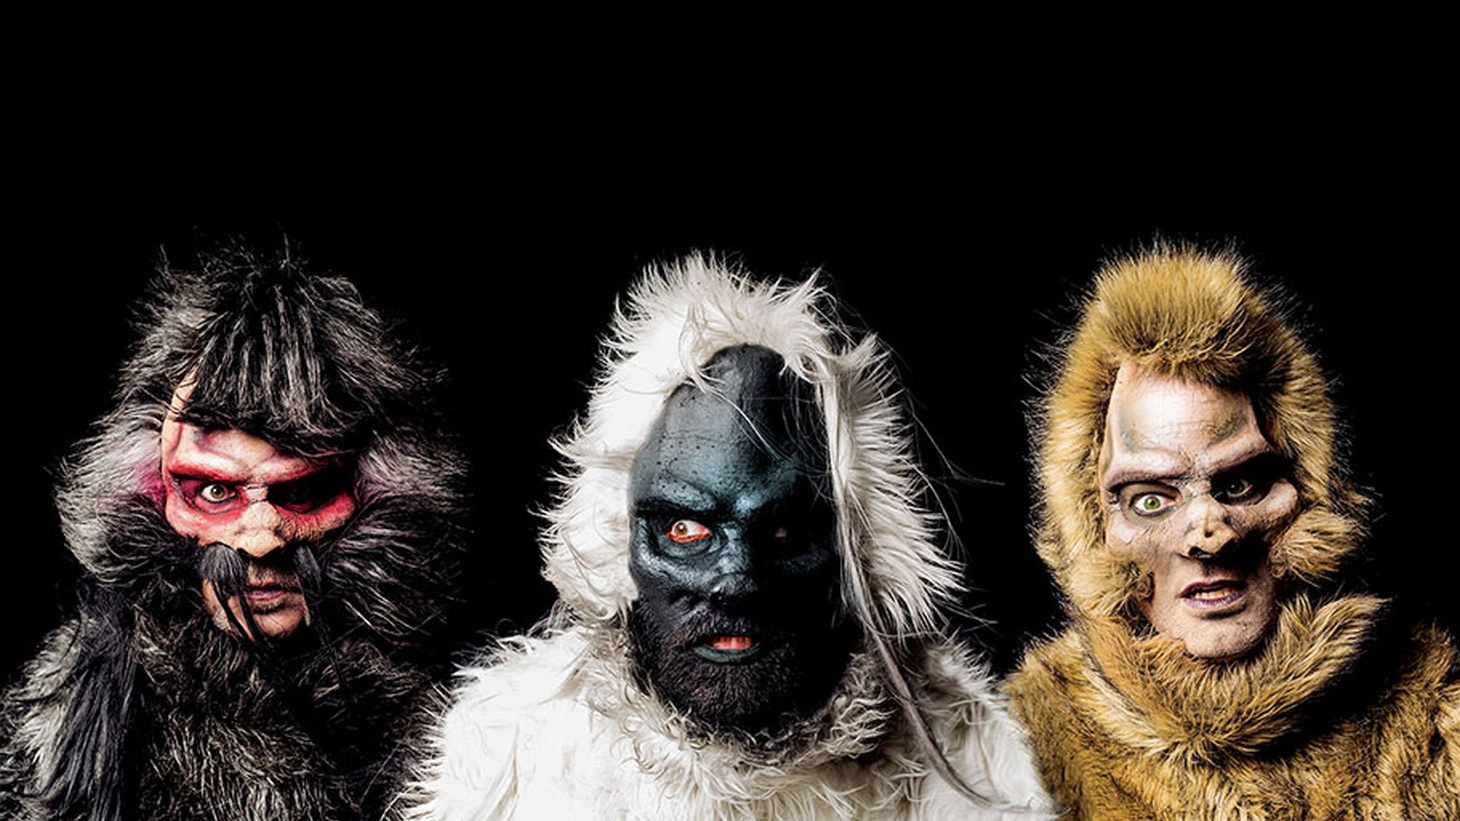 Dressed like three giant yetis PPL MVR make quite the impression. Based in Los Angeles, these mountain men are attracting loads of attention with their catchy songs as well.